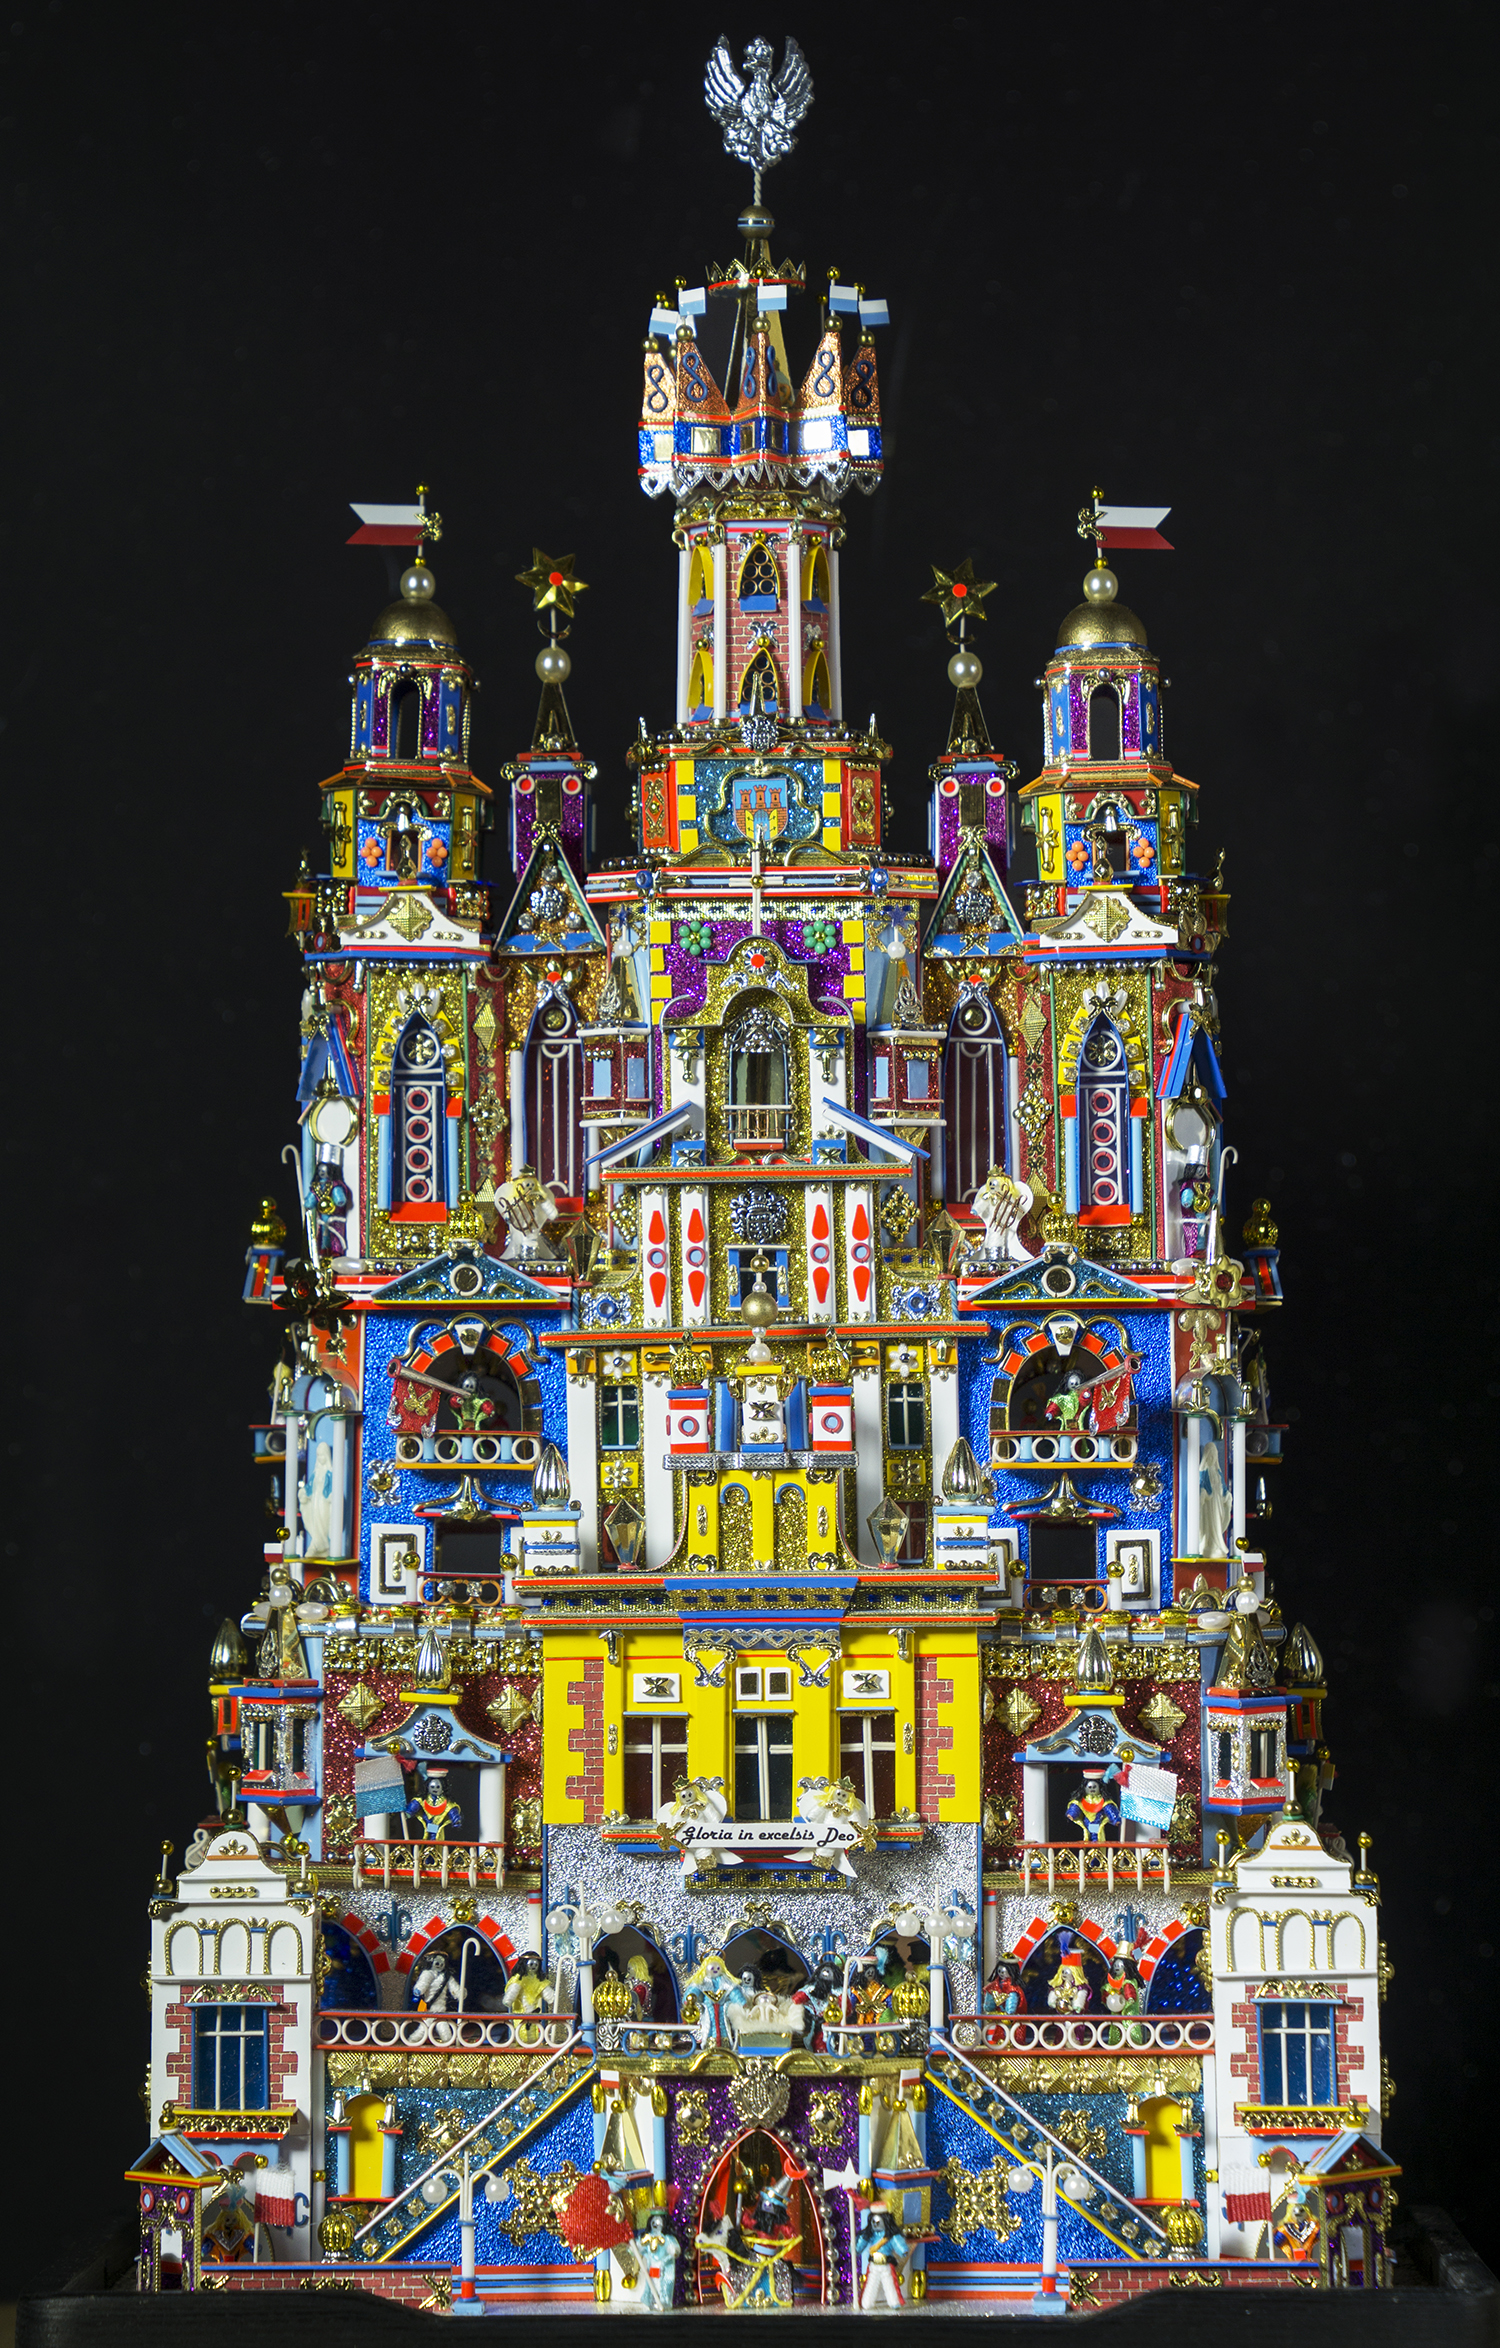 Figure 14:This Nativity, known as a szopka, was made in Poland by Kazimierz Stopinski. The unique folk tradition of the szopka dates to the late 18th and early 19th centuries, with the portable theaters made for Nativity puppet plays. It takes the form of an elaborate building facade in which the tiny figures of the Holy Family are surrounded with fanciful architectural features similar to those seen on Krakow's historic buildings. Every year since 1937 a szopka-building competition has been held in Krakow's market square. Stopinski has won first prize three times for his entries (medium and small category), most recently in 2015. On loan from the Knights of Columbus Museum, New Haven, Connecticut.